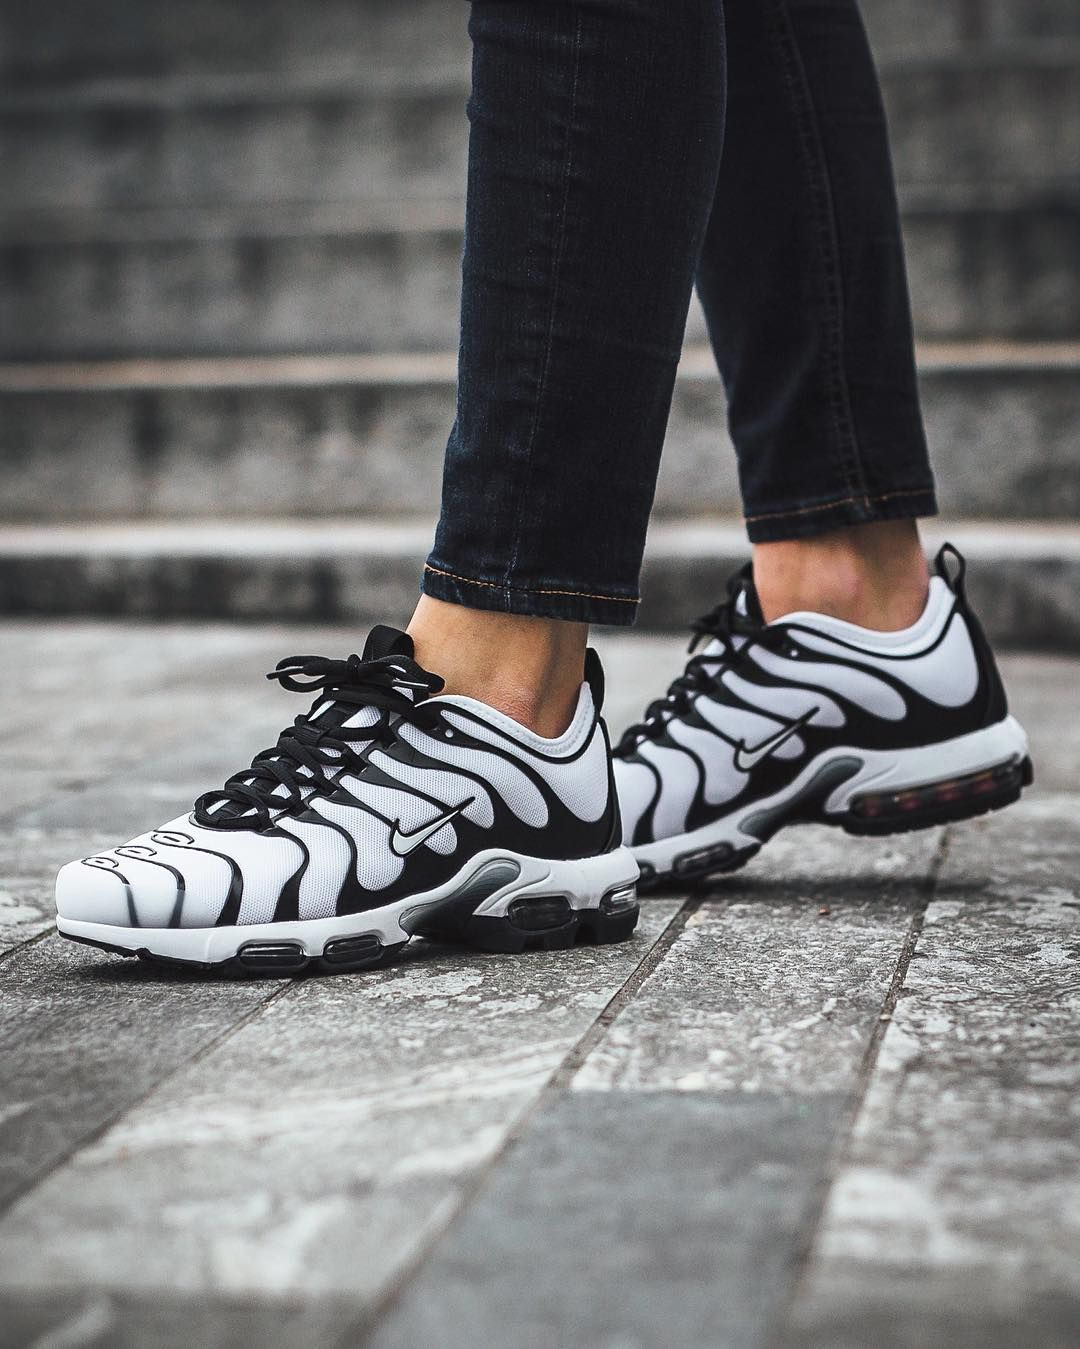 0defc9d338 Nike Wmns Air Max Plus TN Ultra: White/White-Black | Nike❤ in ...